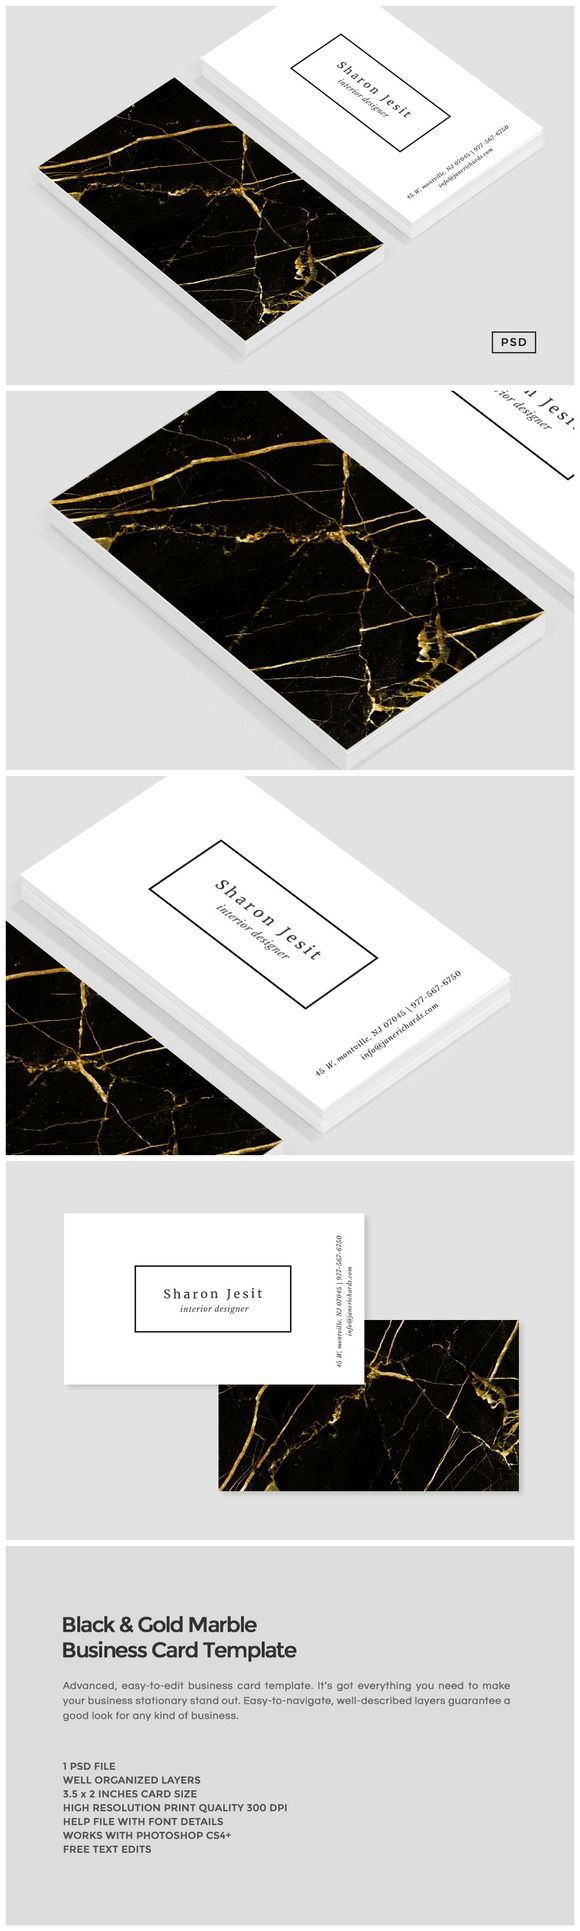 558 best Creative Business Cards images on Pinterest | Business card ...